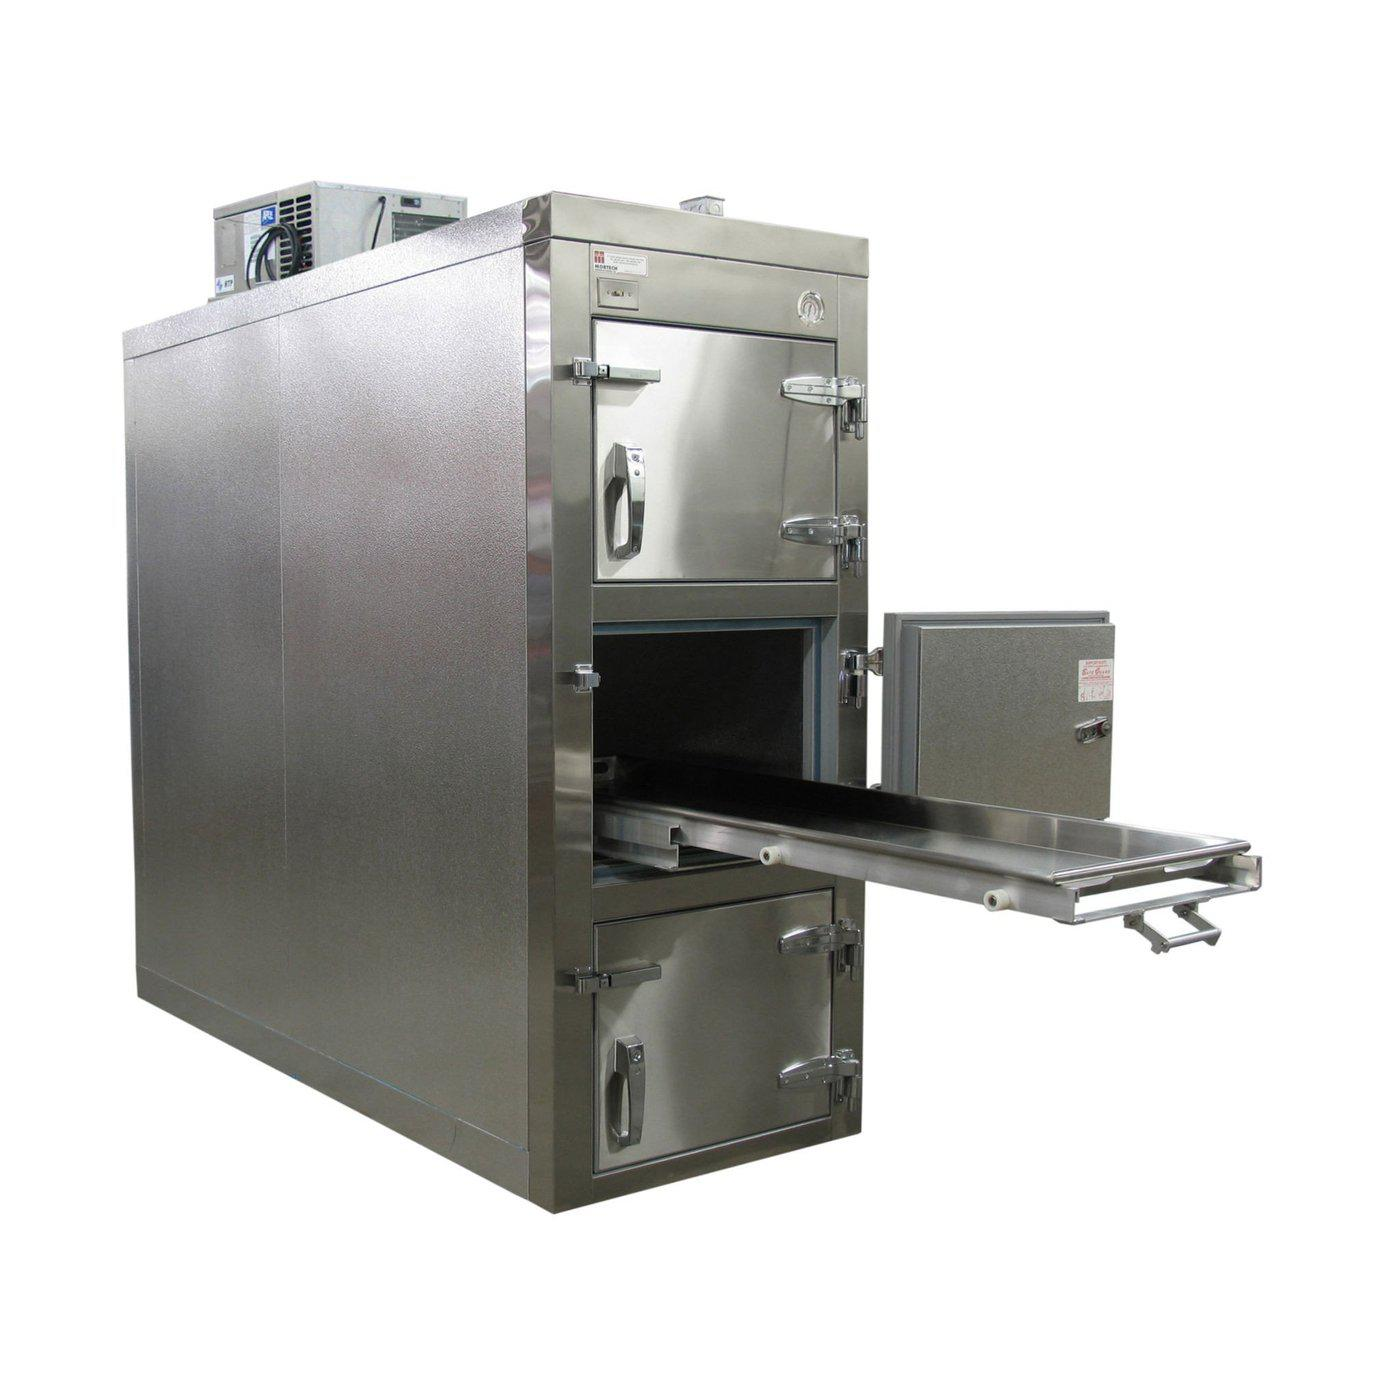 Premium Three Body Refrigerator-Refrigeration-Mortech Manufacturing Company Inc. Quality Stainless Steel Autopsy, Morgue, Funeral Home, Necropsy, Veterinary / Anatomy, Dissection Equipment and Accessories